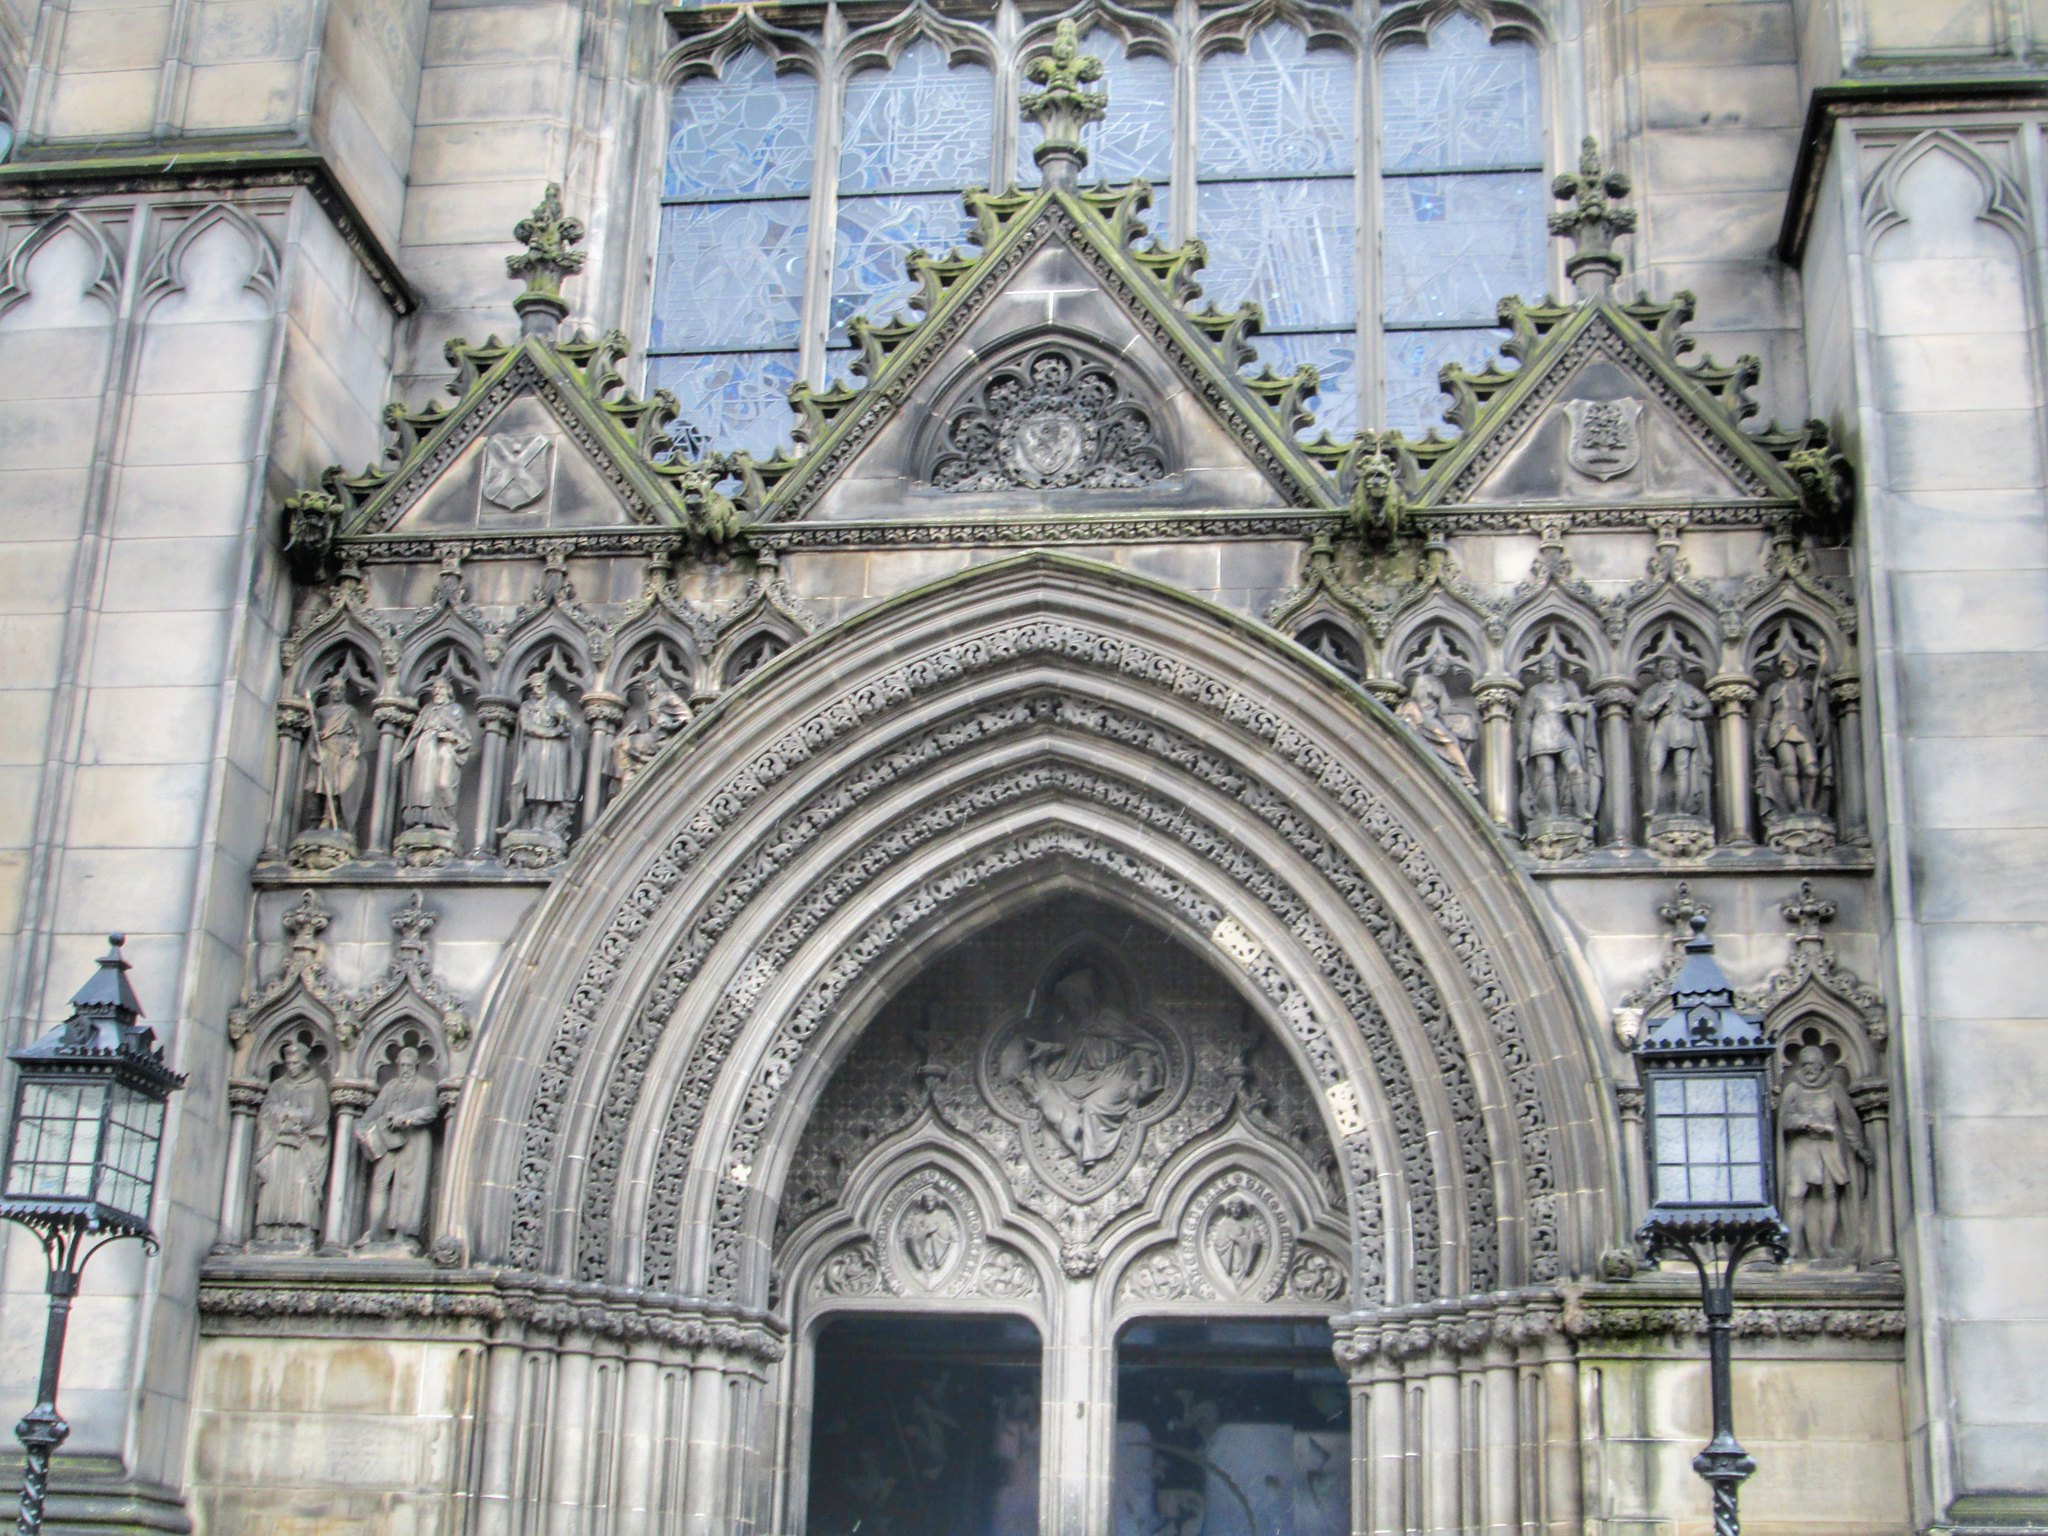 St Giles Cathedral Exterior details